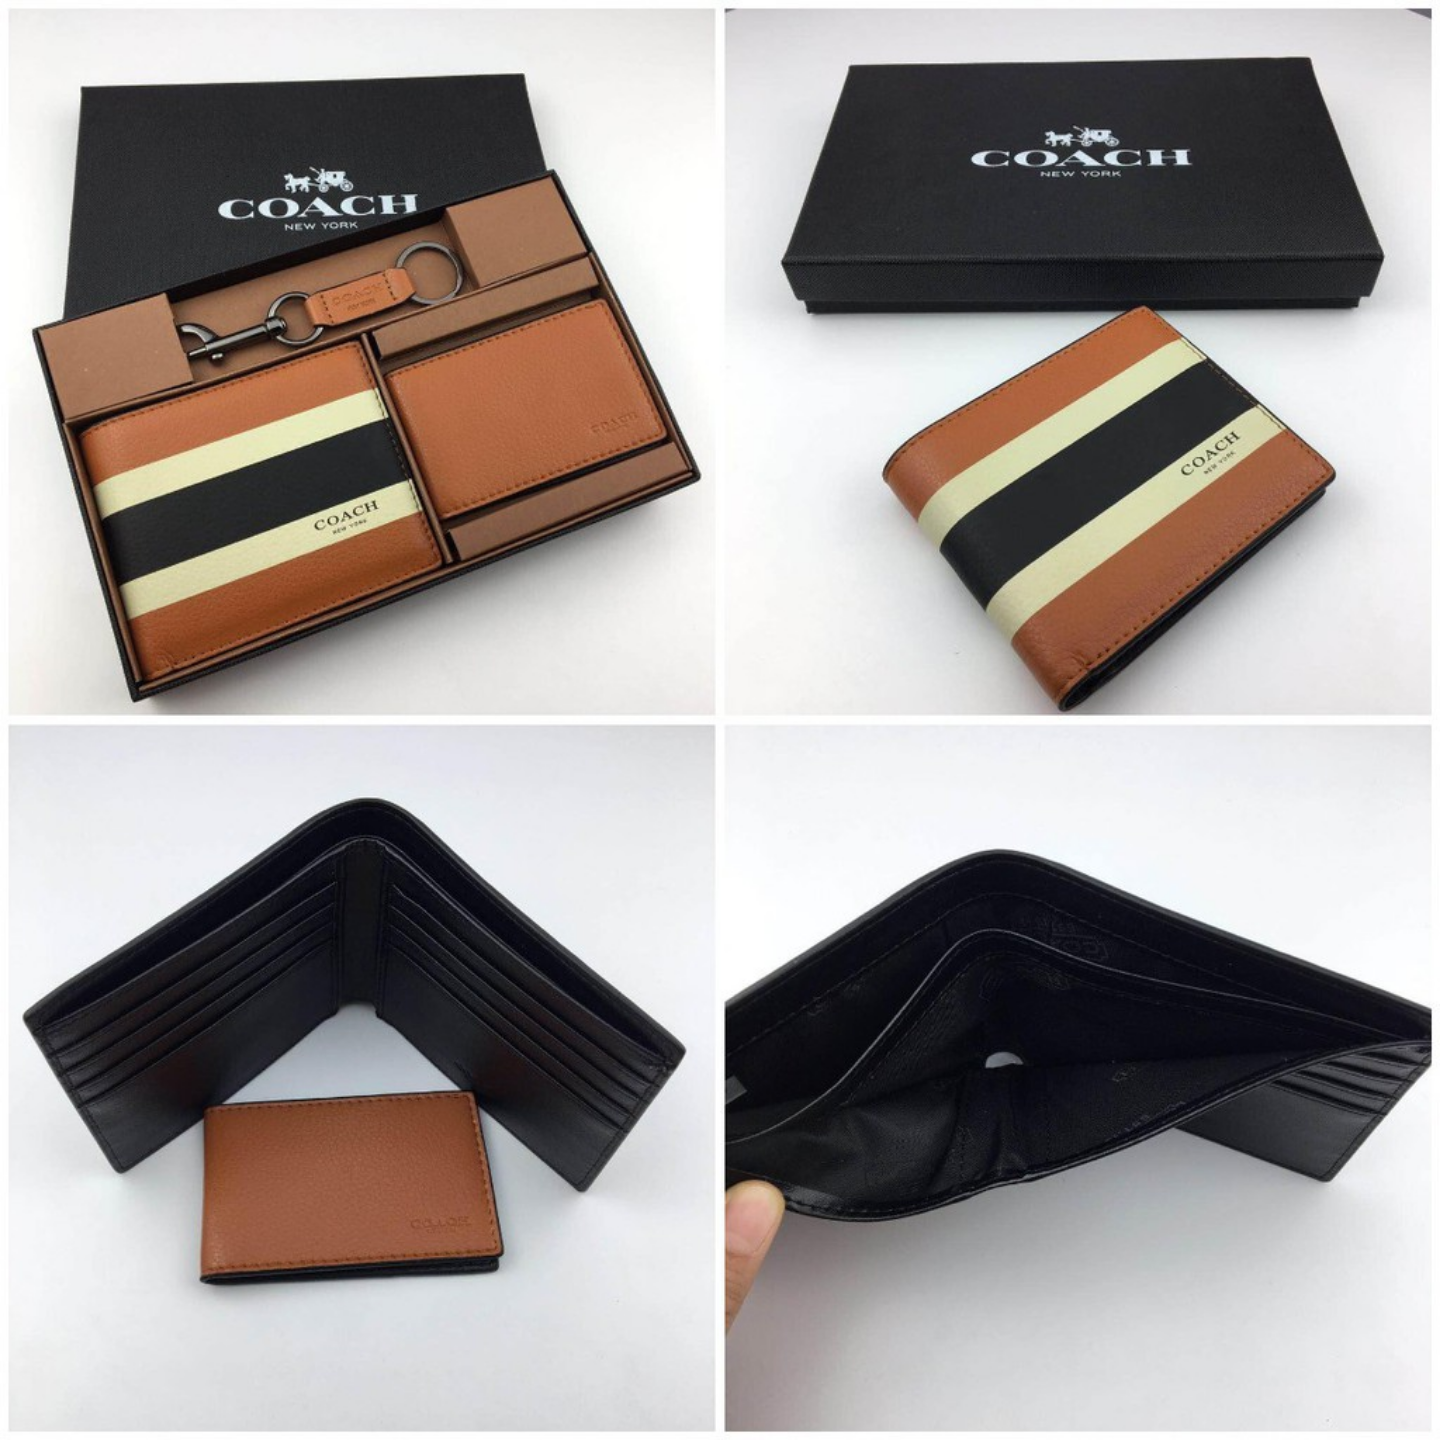 C Wallet leather short wallet mens wallet Folding wallet F74929 F74064 F74974 F74736 F74688 F74699 F74991 F74993 F74586 F75086 F22534